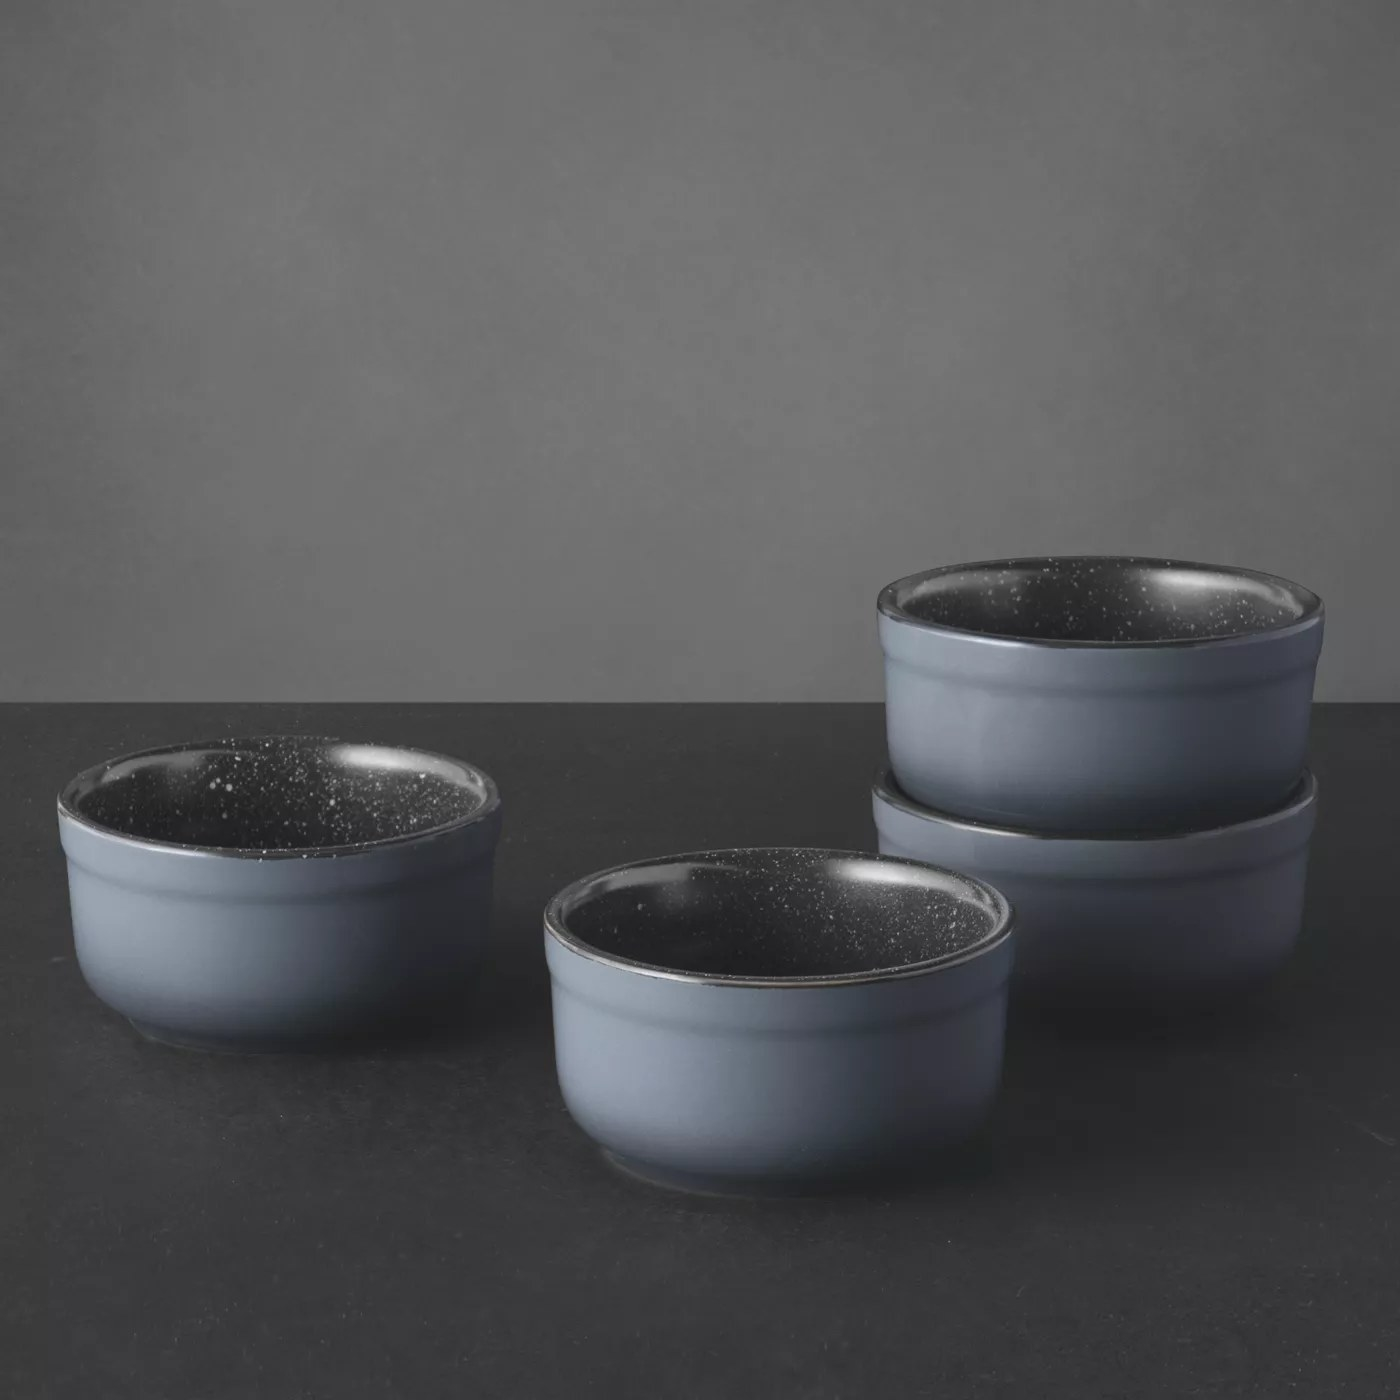 A set of four small, gray ramekins with speckled interiors